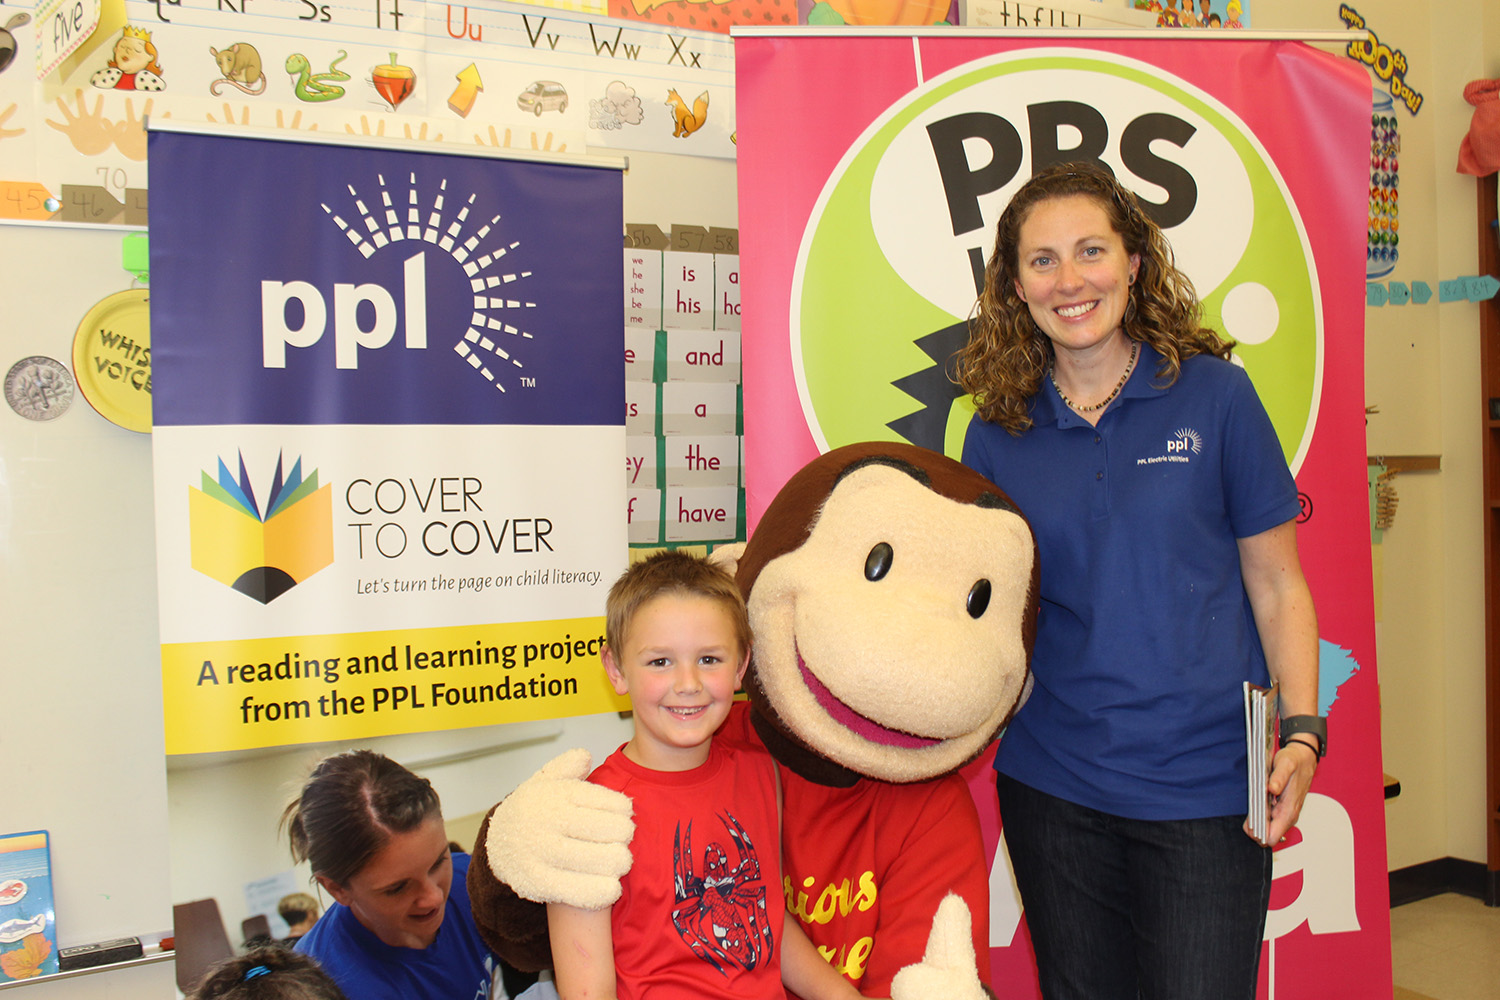 PPL Regional Affairs Director Alana Roberts poses with a youngster at Stourbridge Primary Center in Honesdale, Pa. PPL partnered with WVIA to bring the Cover to Cover program to Stourbridge.